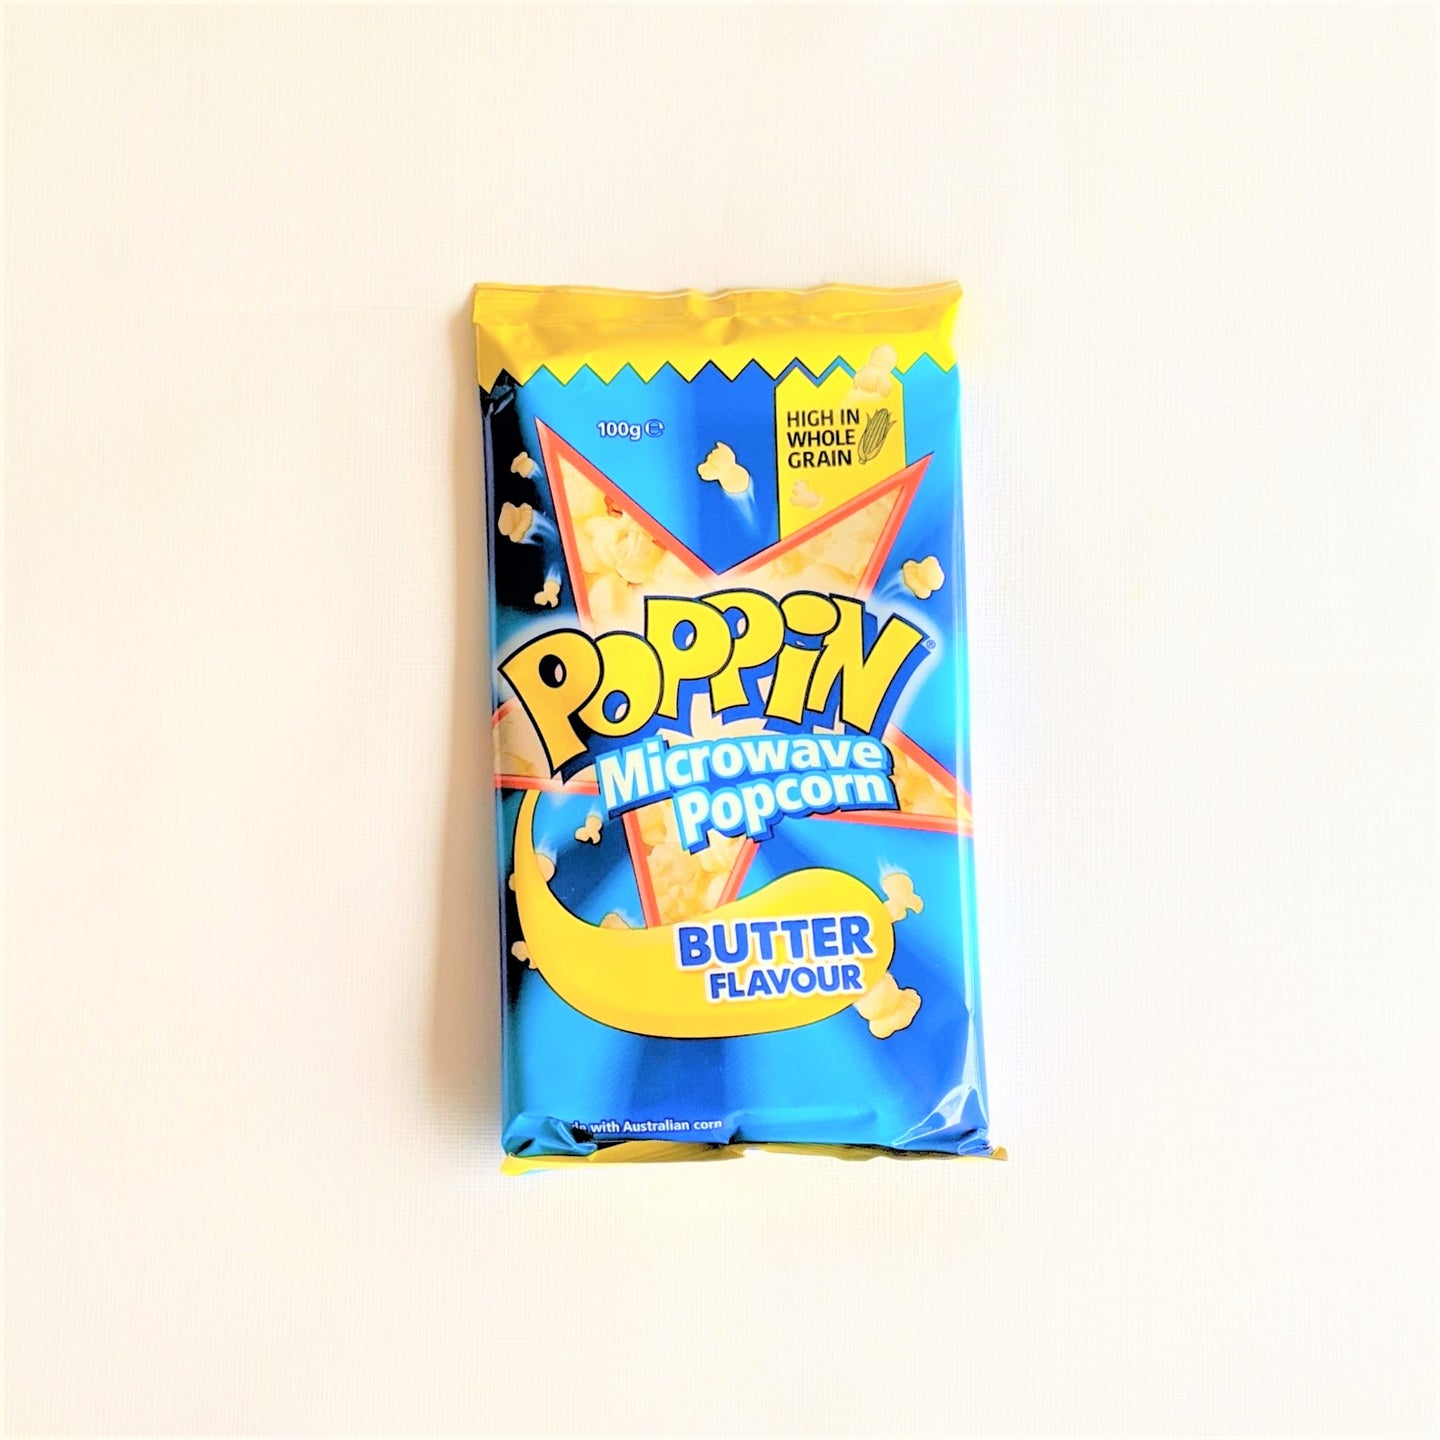 Poppin microwave popcorn, butter flavour, 100g